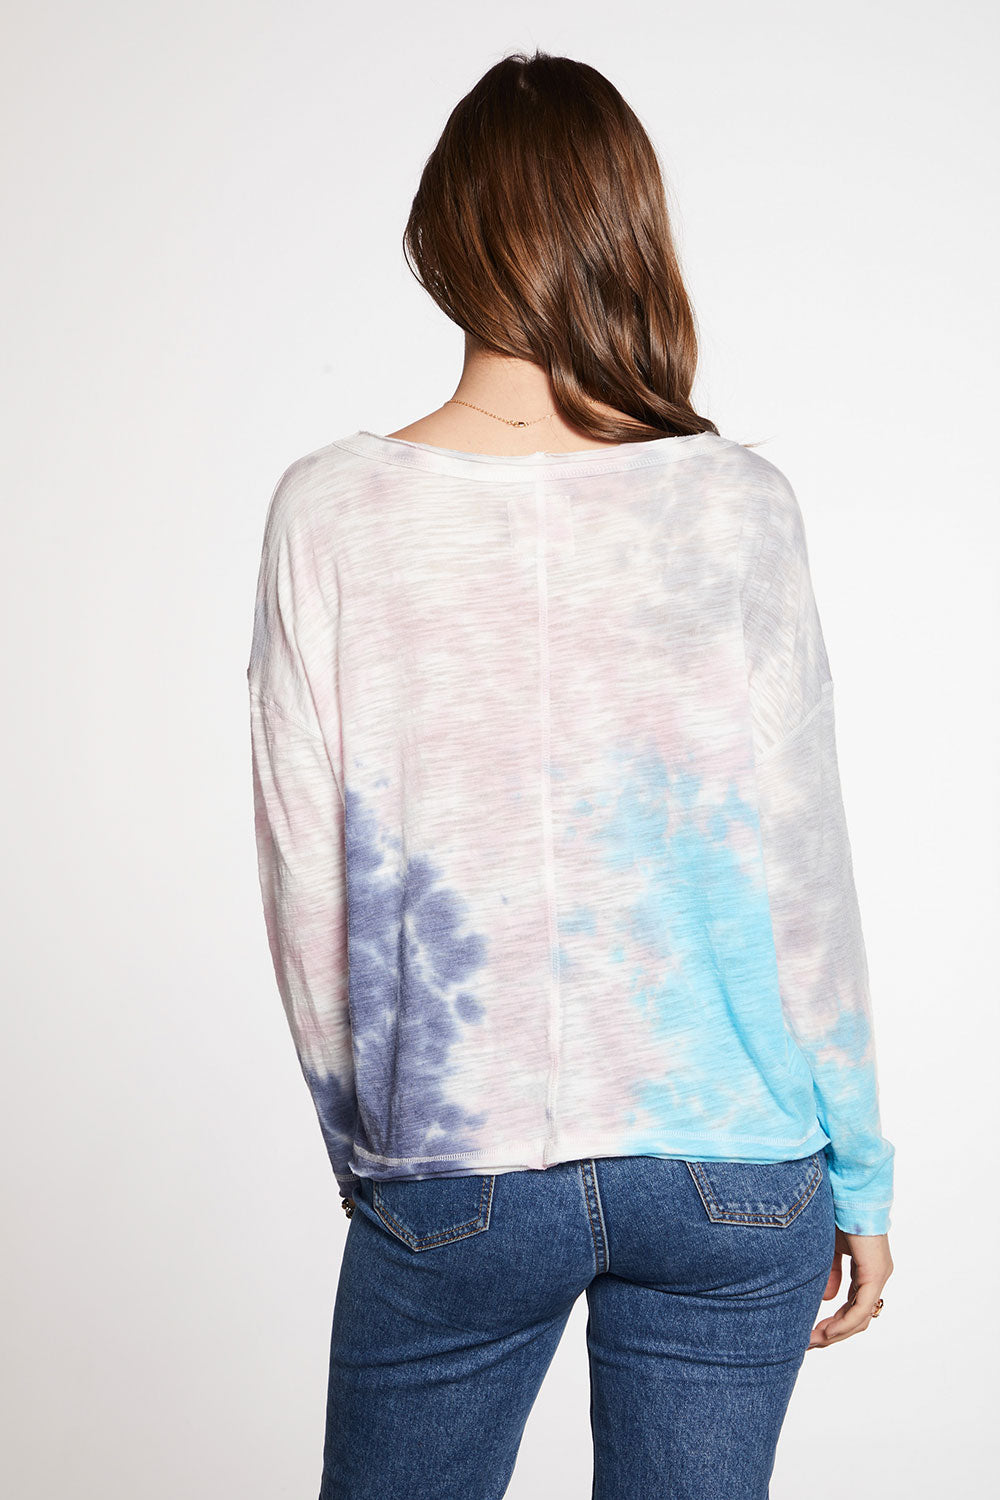 Slub Jersey Raw Edge Long Sleeve Open Neck Drop Shoulder Tee WOMENS chaserbrand4.myshopify.com